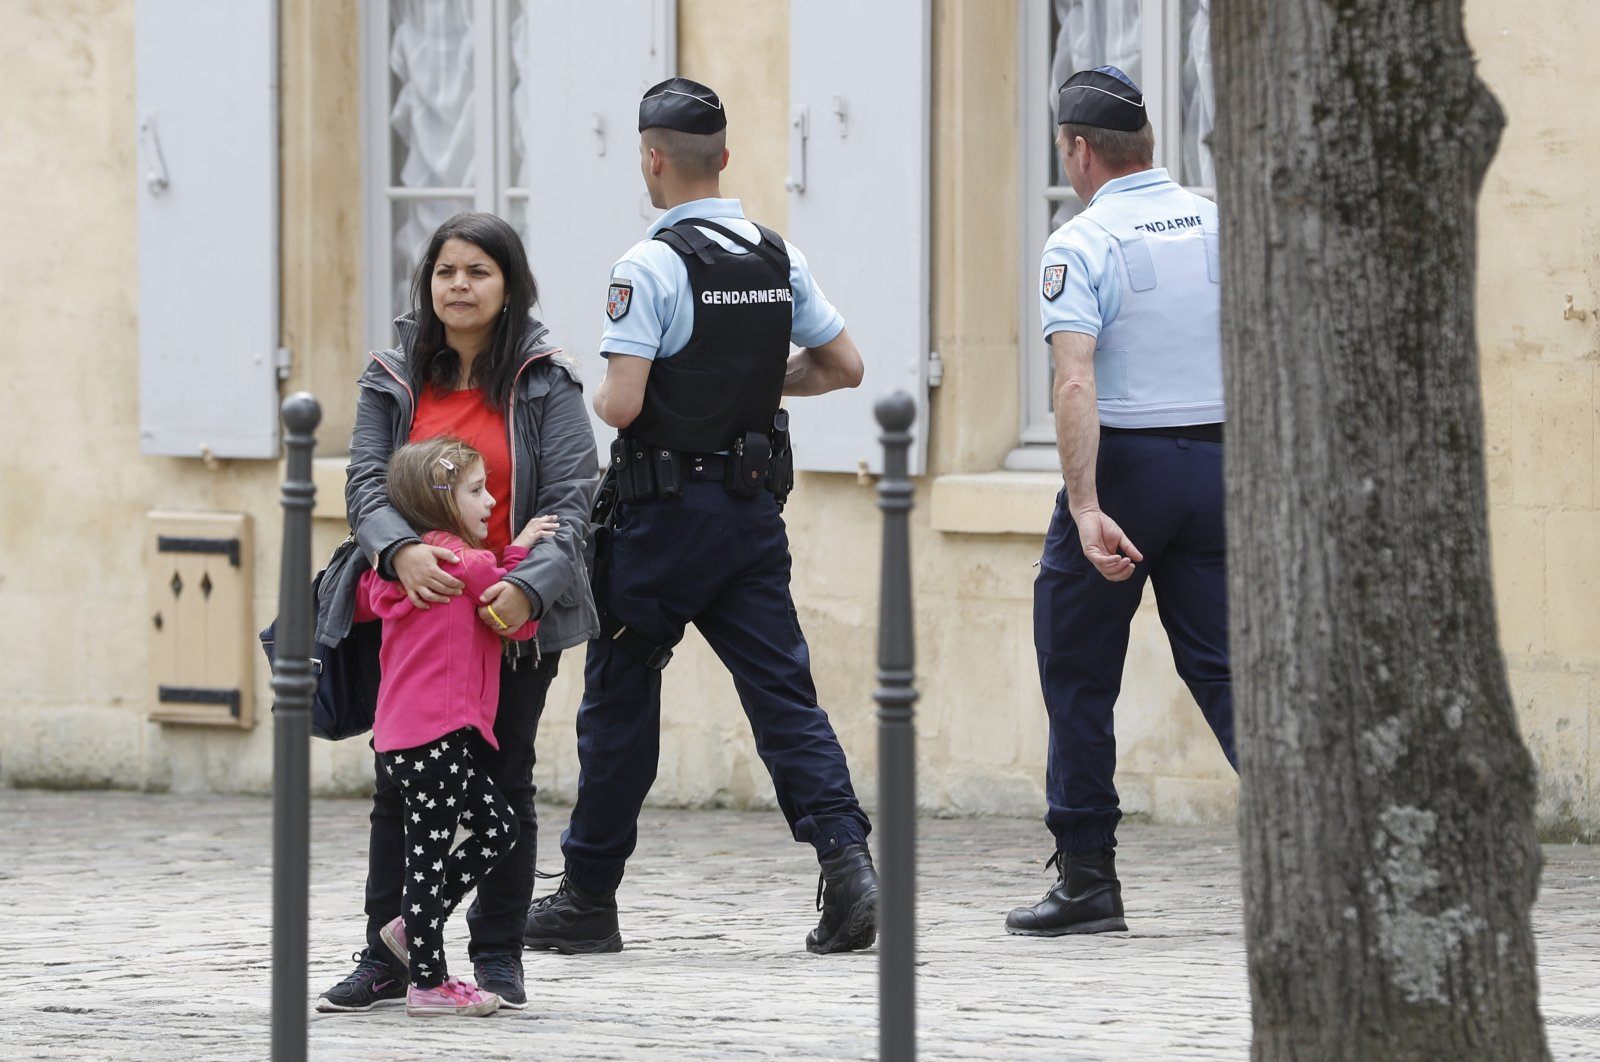 Police Officers patrol as a woman stands with a child in Chantilly, France in this undated picture. (Reuters Photo)